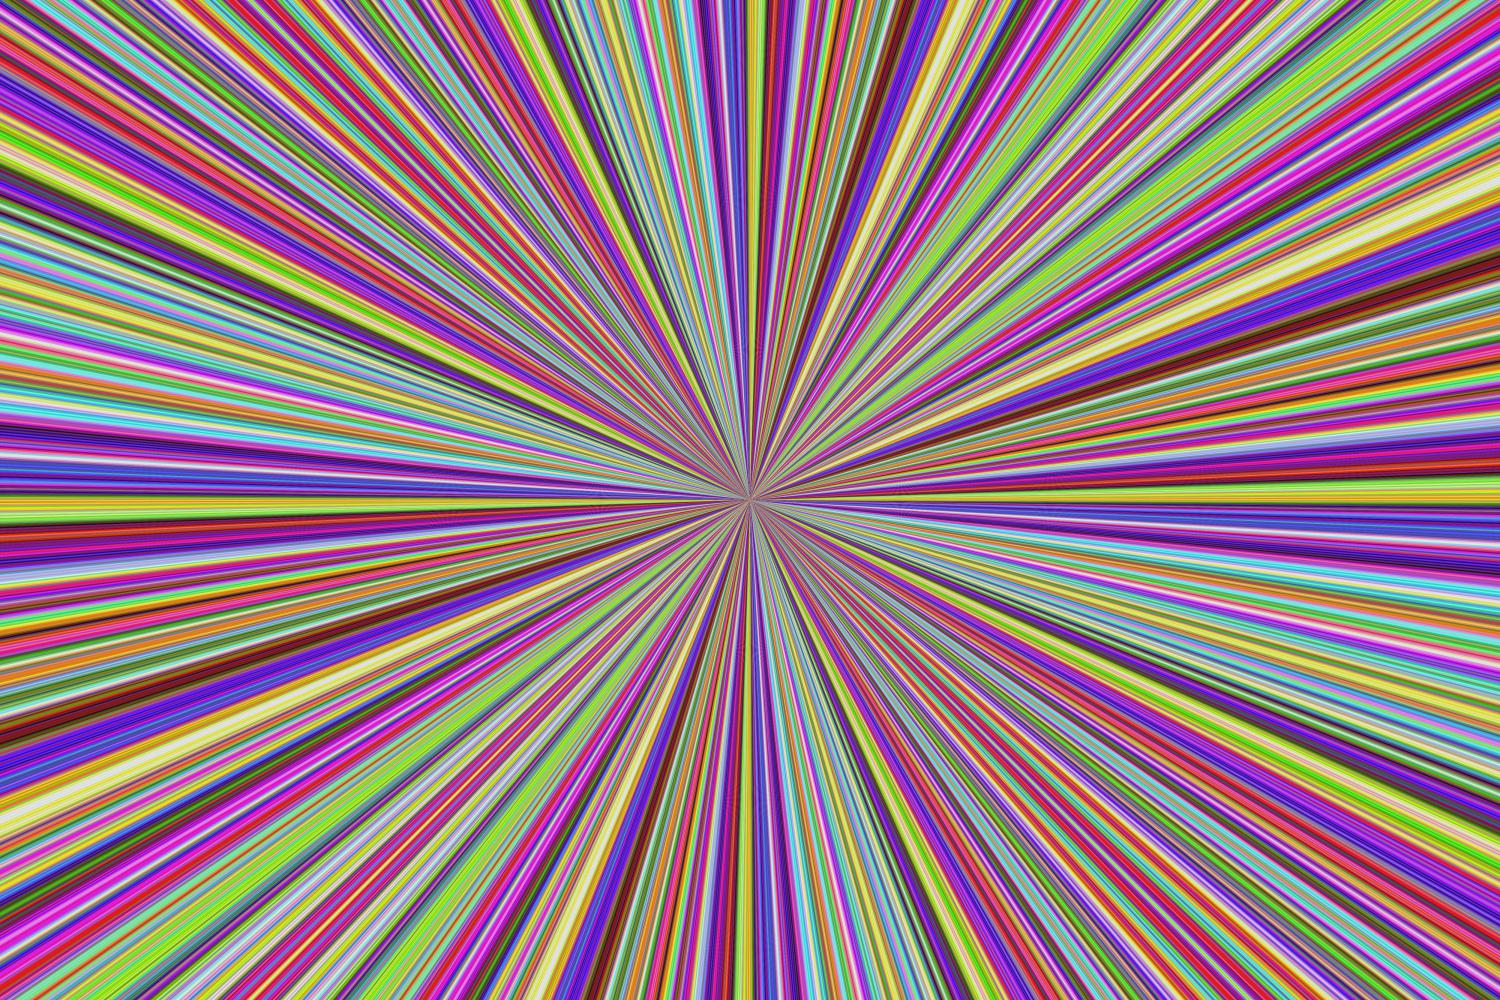 Download Free Multicolored Ray Burst Background Graphic By Davidzydd for Cricut Explore, Silhouette and other cutting machines.